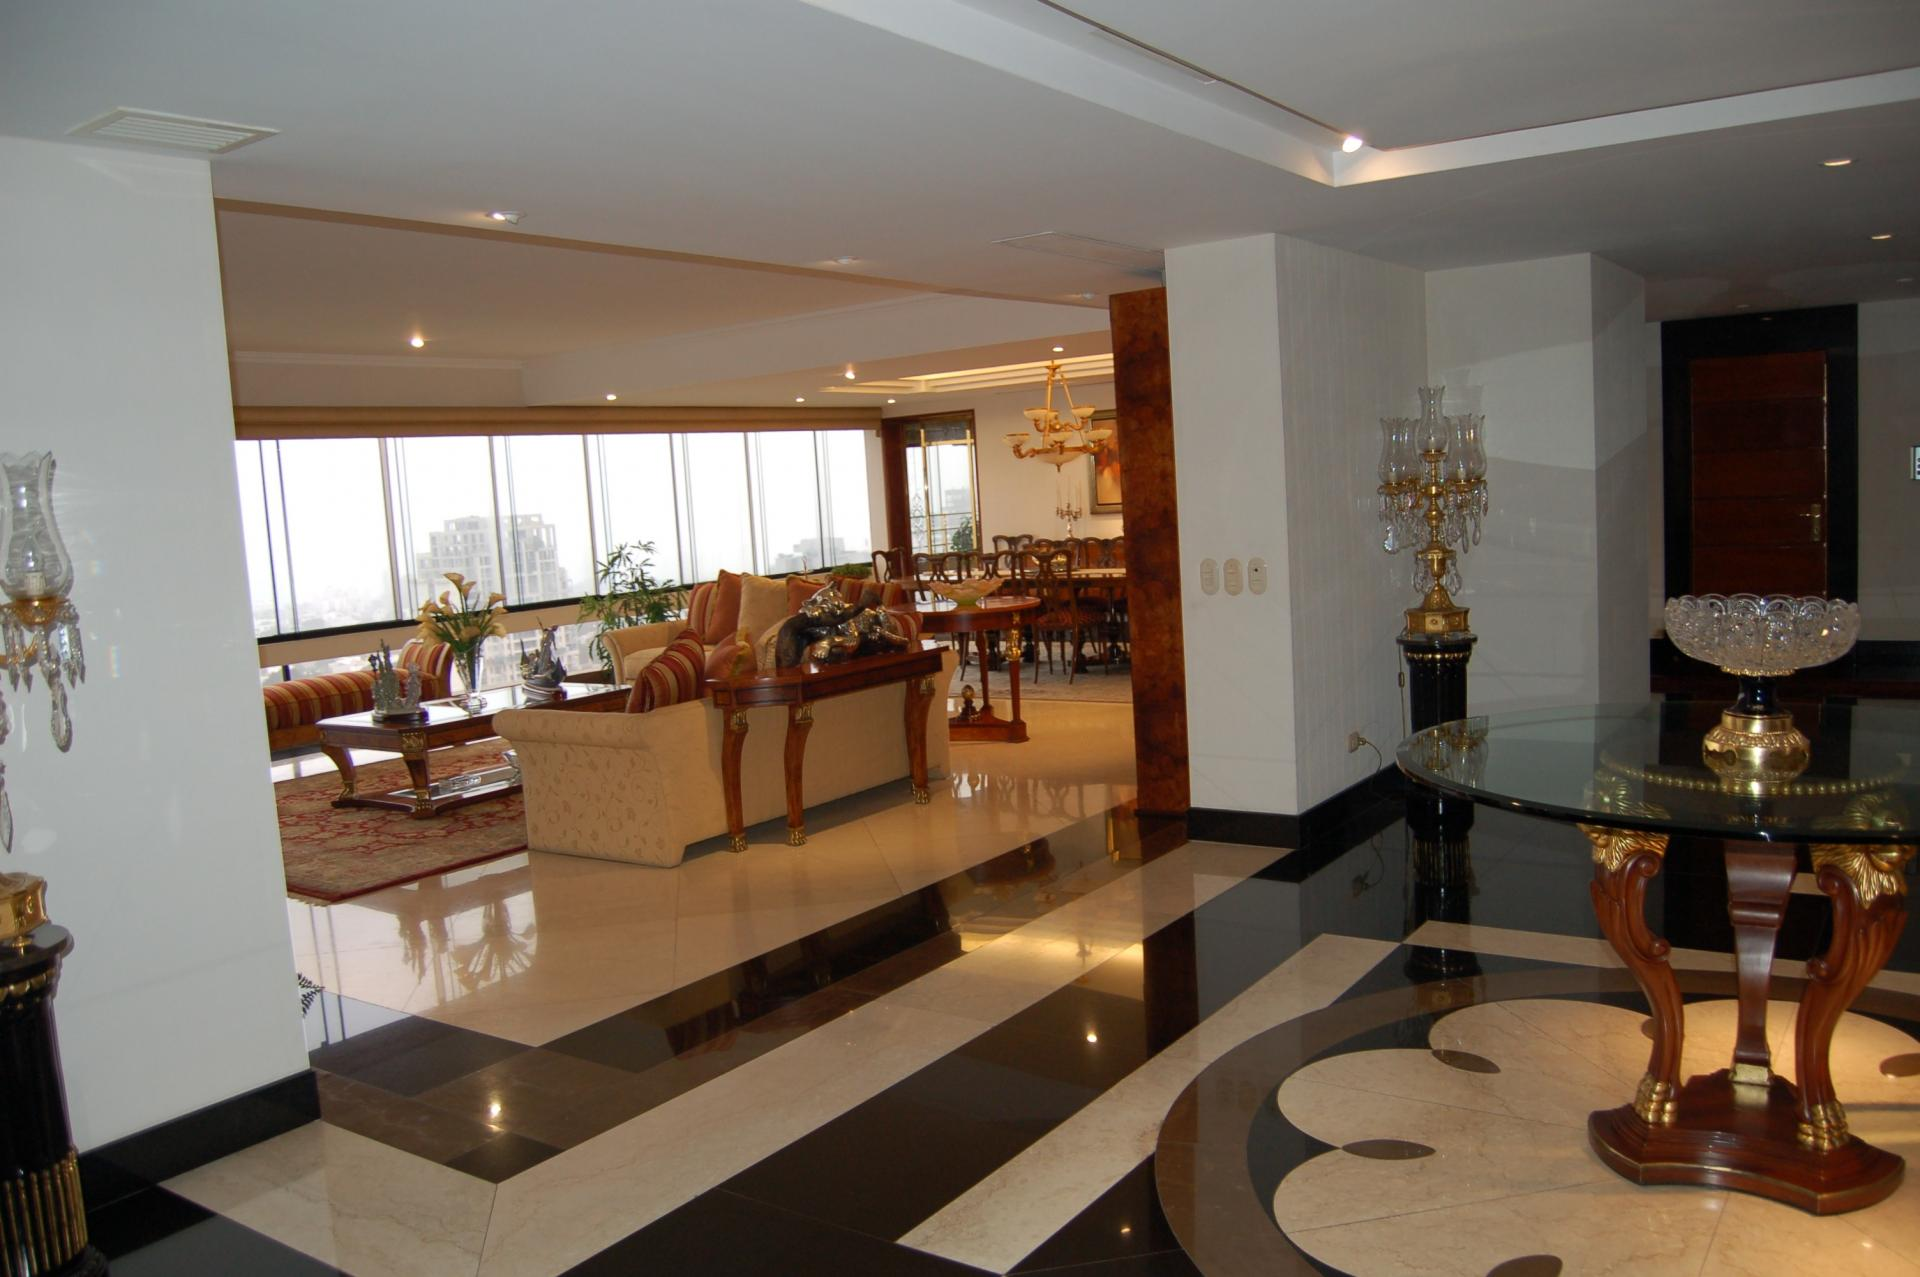 LIMA, SAN ISIDRO, 4 BEDROOM PENTHOUSE WITH POOL, VIEWS OF LIMA GOLF, FOR SALE